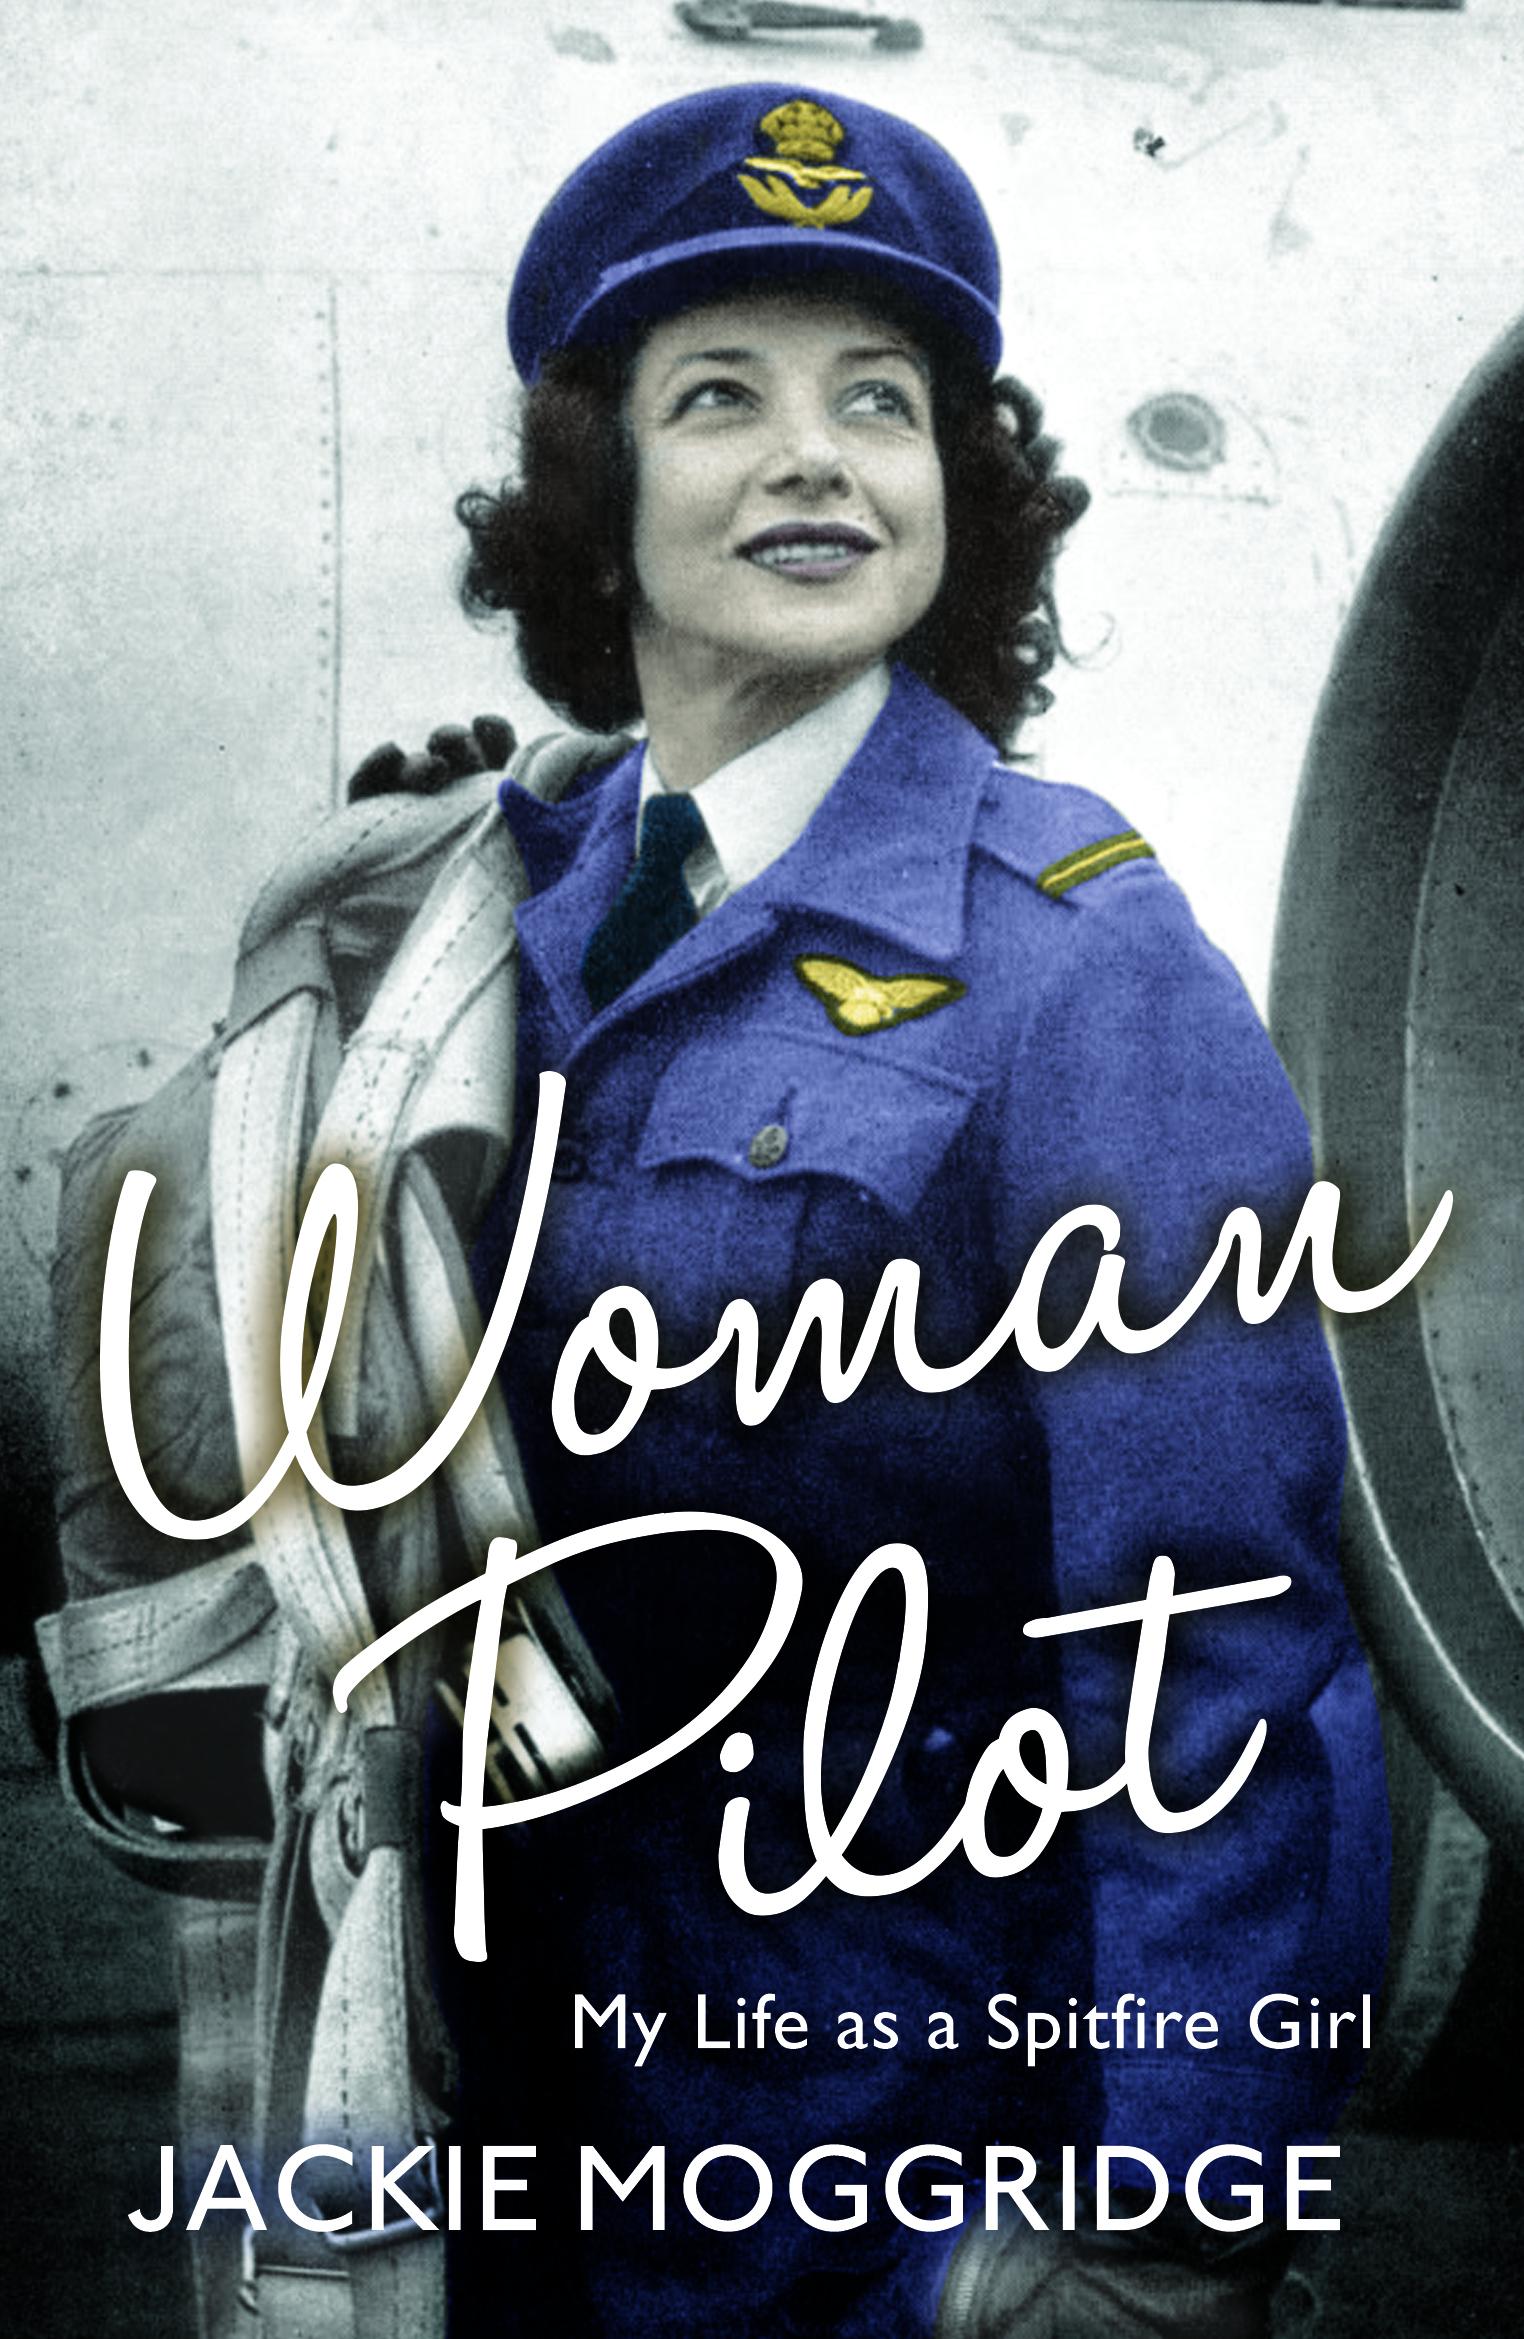 MOGGRIDGE_Woman Pilot_DRAFT.jpg